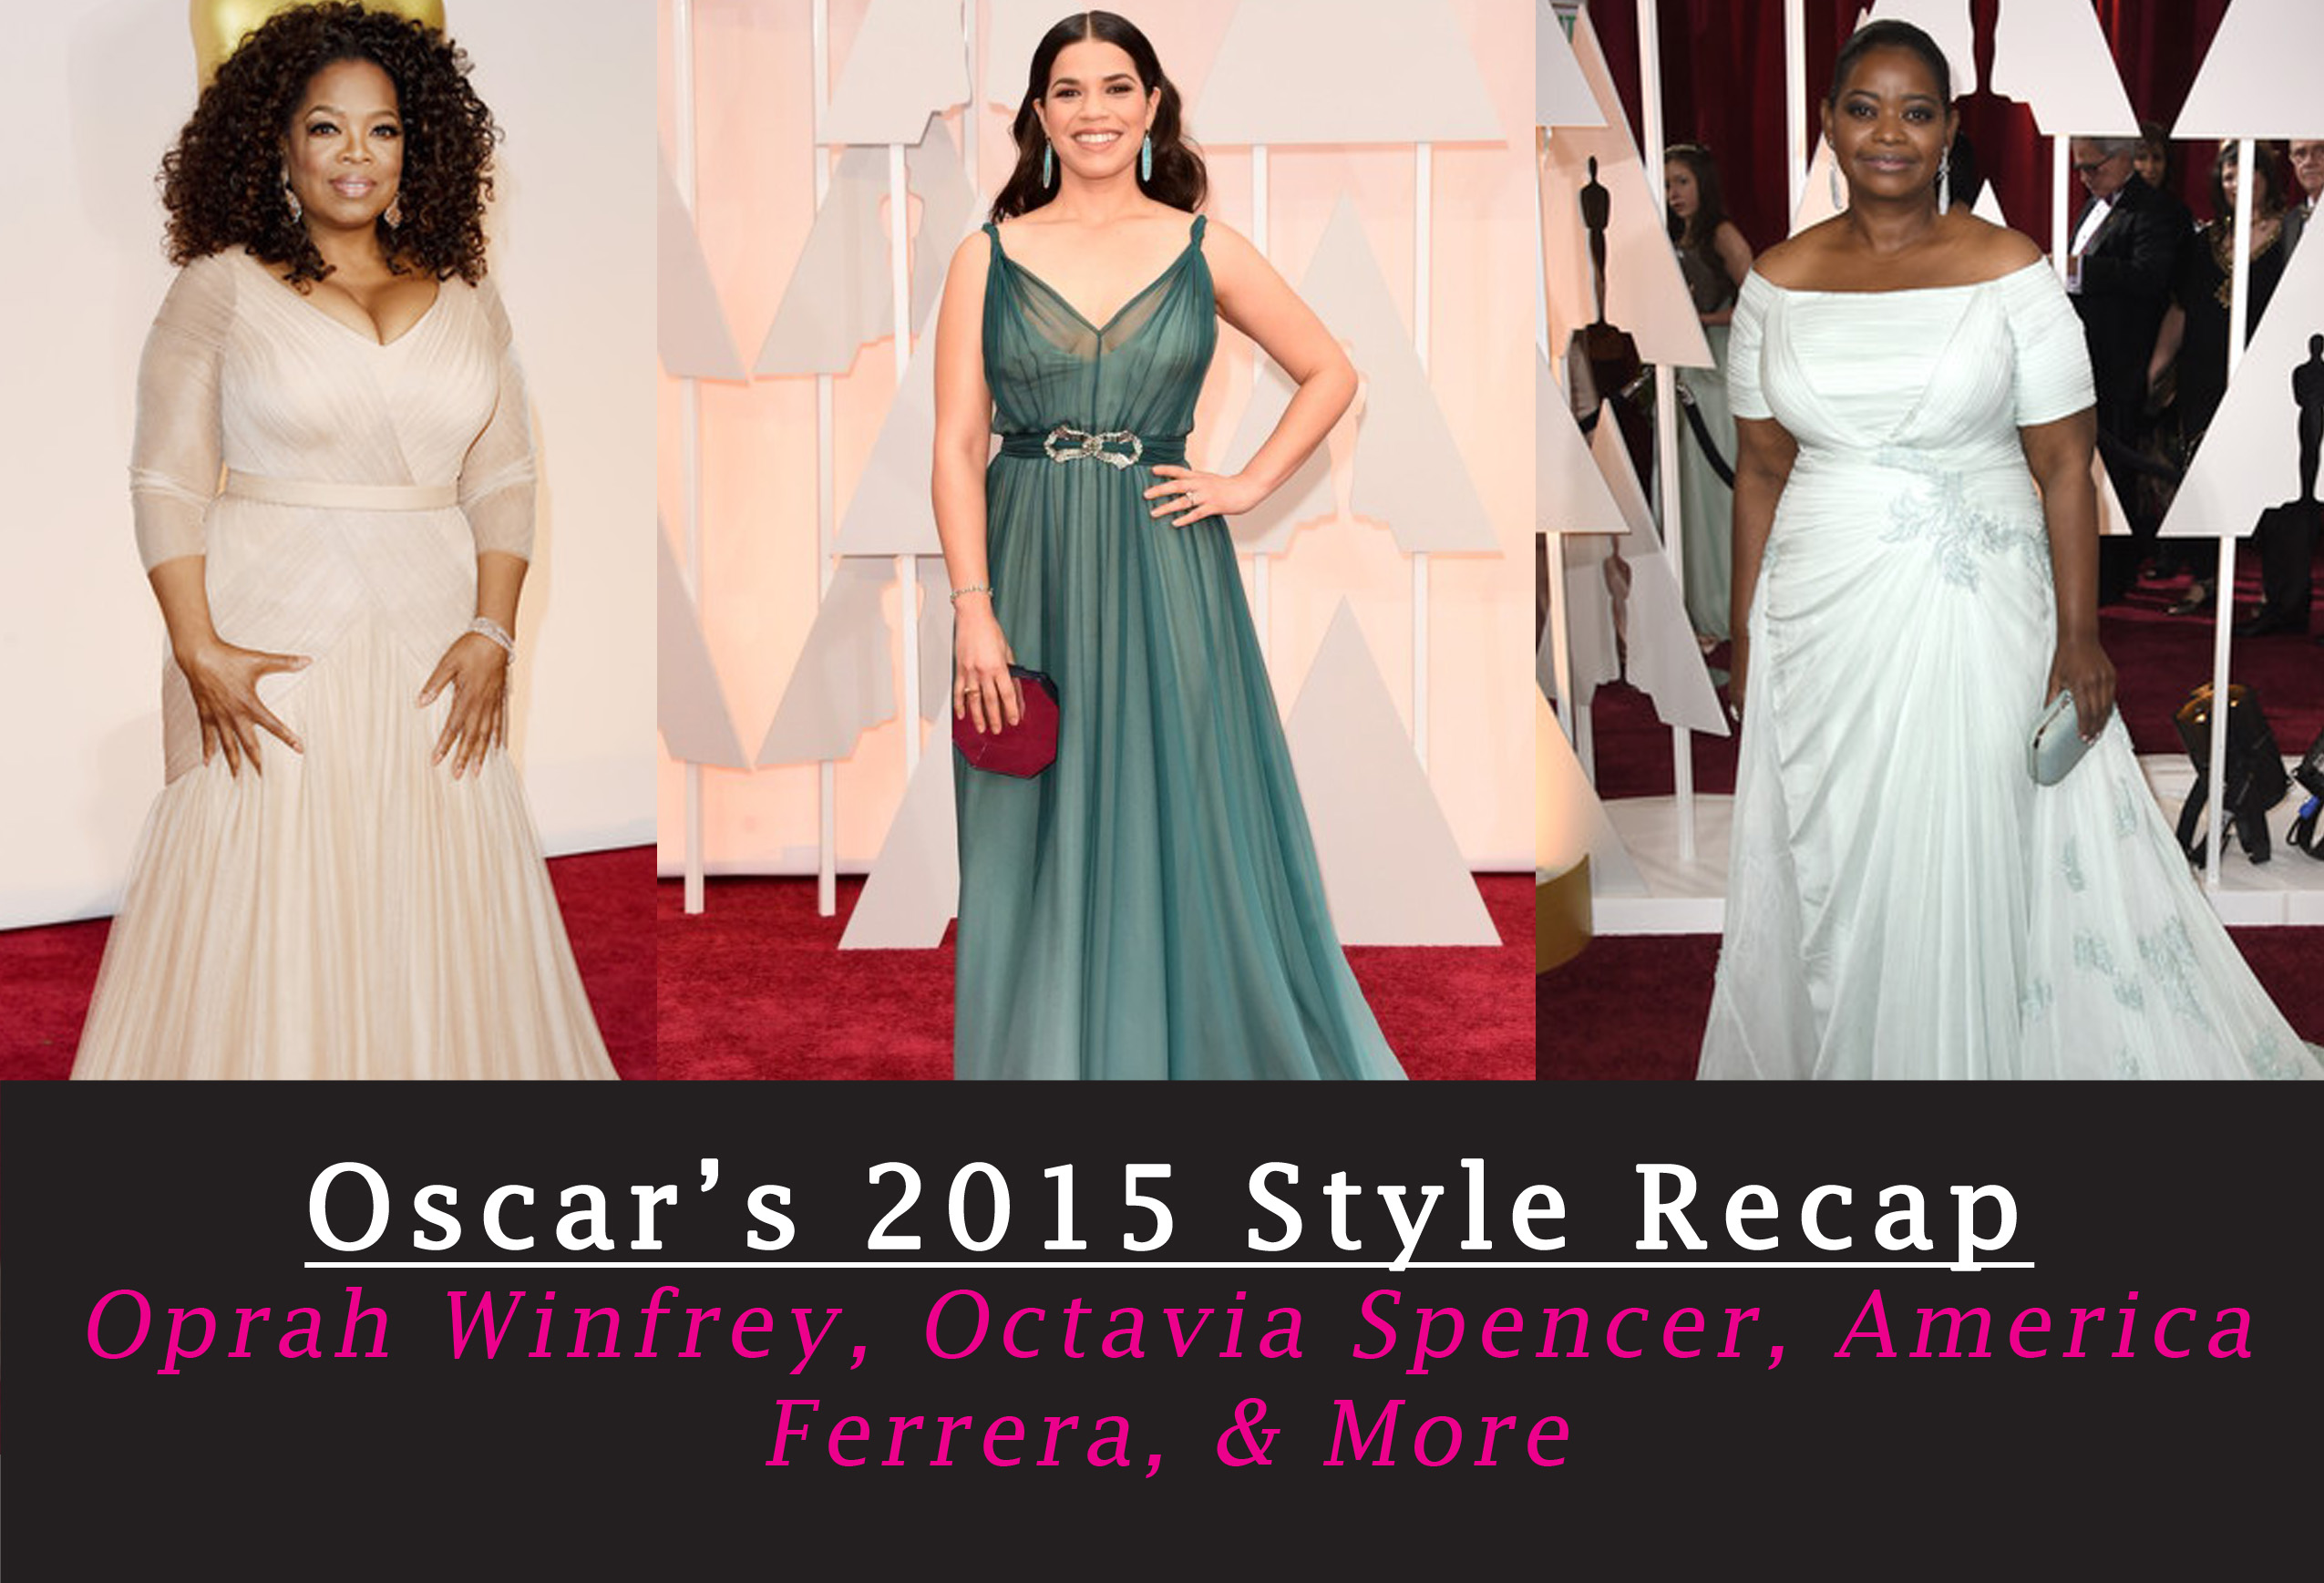 Oprah Winfrey, Jennifer Hudson, Jennifer Lopez, And Octavia Spencer At The 2015 Academy Awards